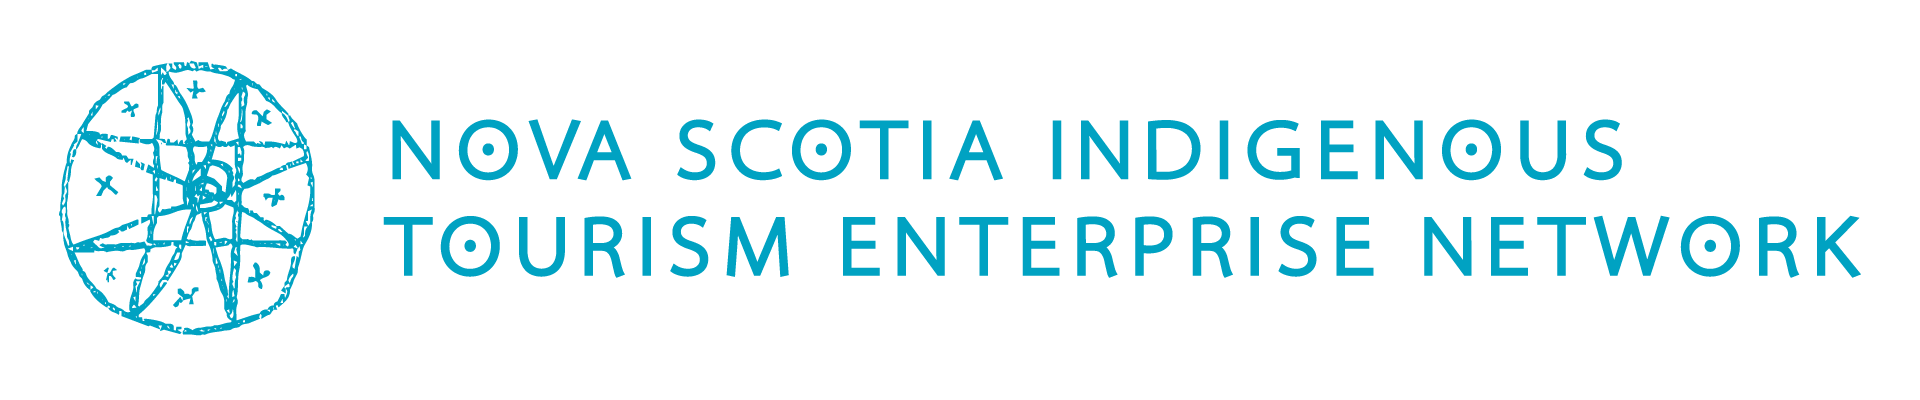 Nova Scotia Indigenous Tourism Enterprise Network (NSITEN)